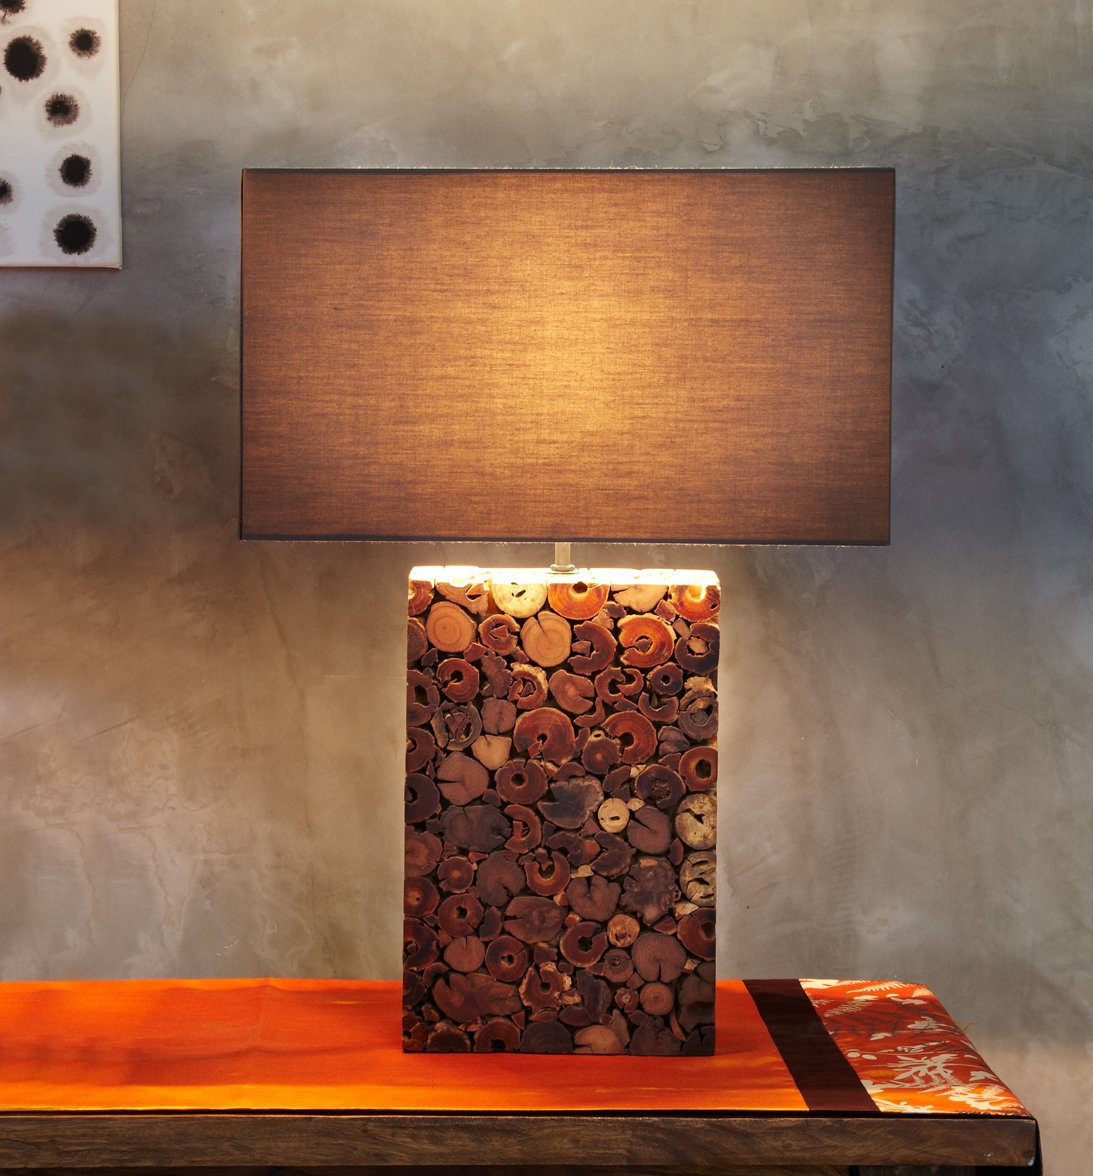 O'THENTIQUE Large Dark Driftwood Mosaic Table Lamp   Handmade Base with Brown Cotton Shade from Reclaimed Driftwood   Coastal Nautical Tropical Design for Beach House Cabin Cottage Bedroom Living